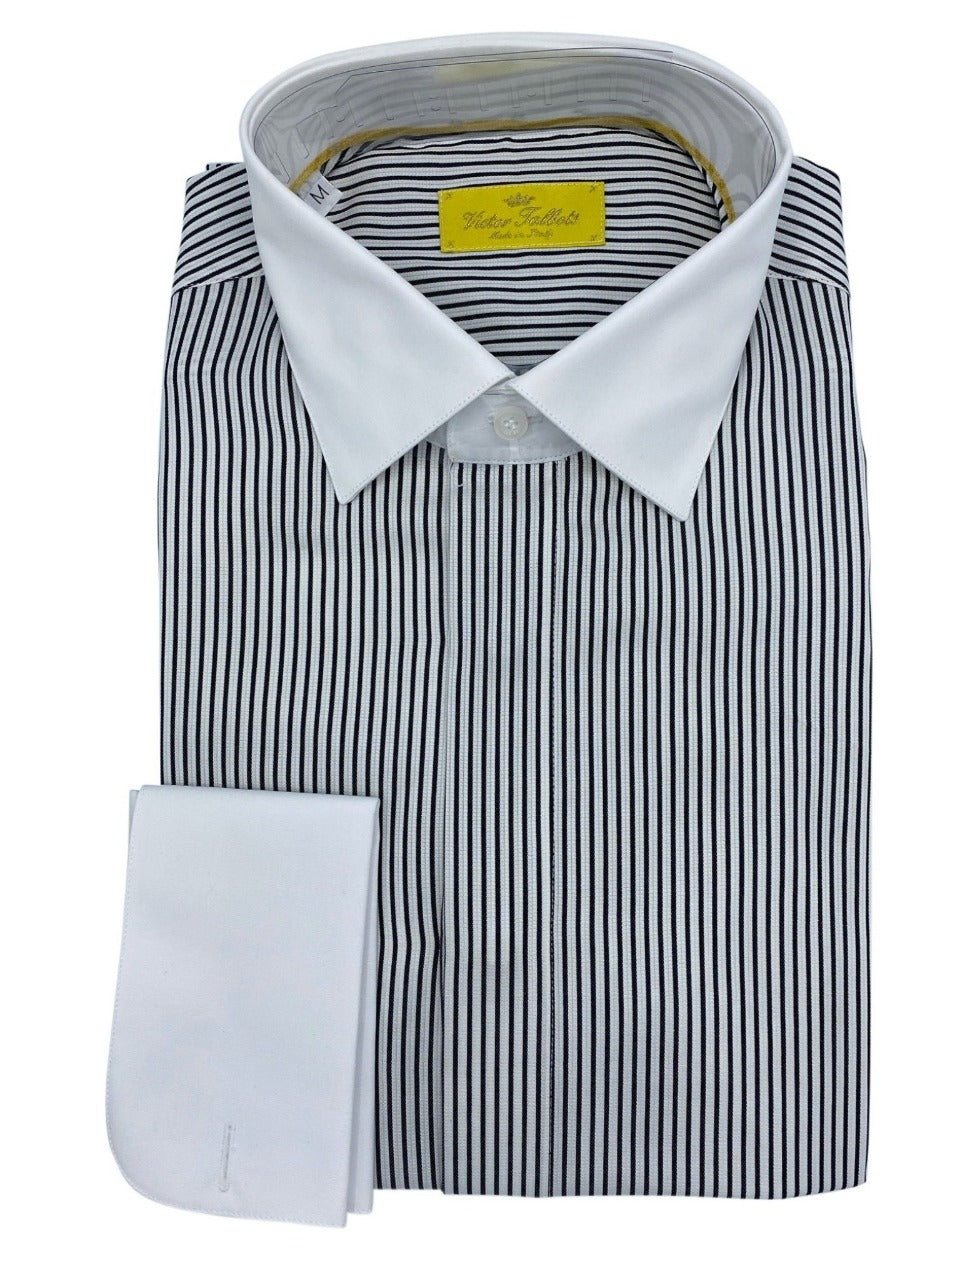 victor talbots midnight blue & white striped shirt made in italy